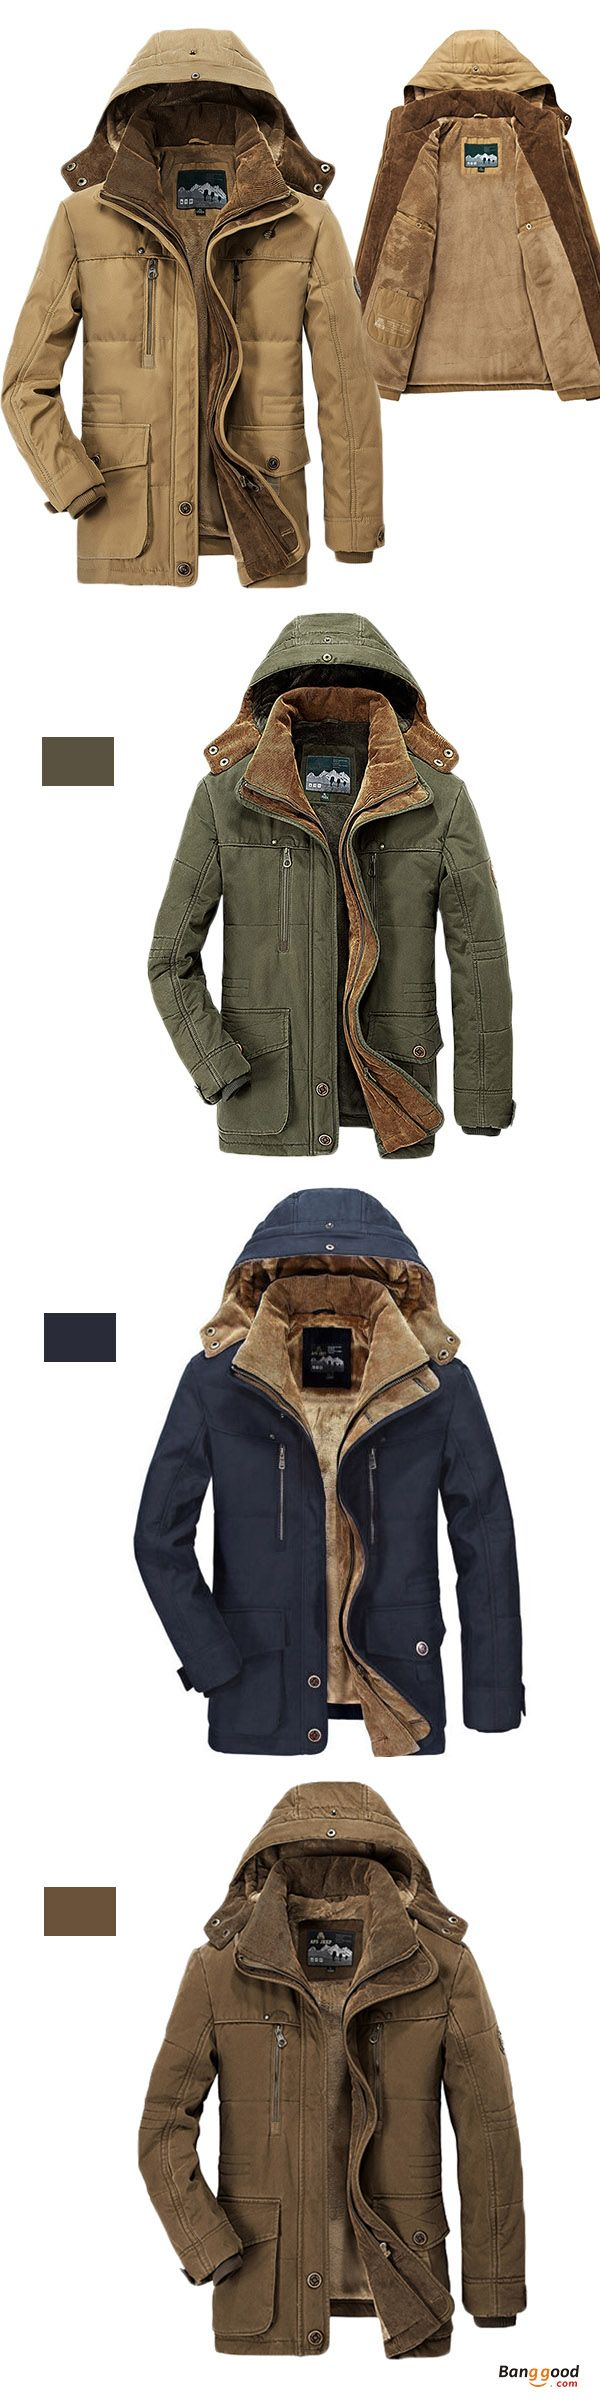 Mens Thick Fleece Winter Coat Hooded Outdoor Solid Color Jacket. Thick winter coat, big pockets! Keep you from the cold. Material: 100% Cotton. Lining: 100% Cotton. Perfect for the winter. Have the look!